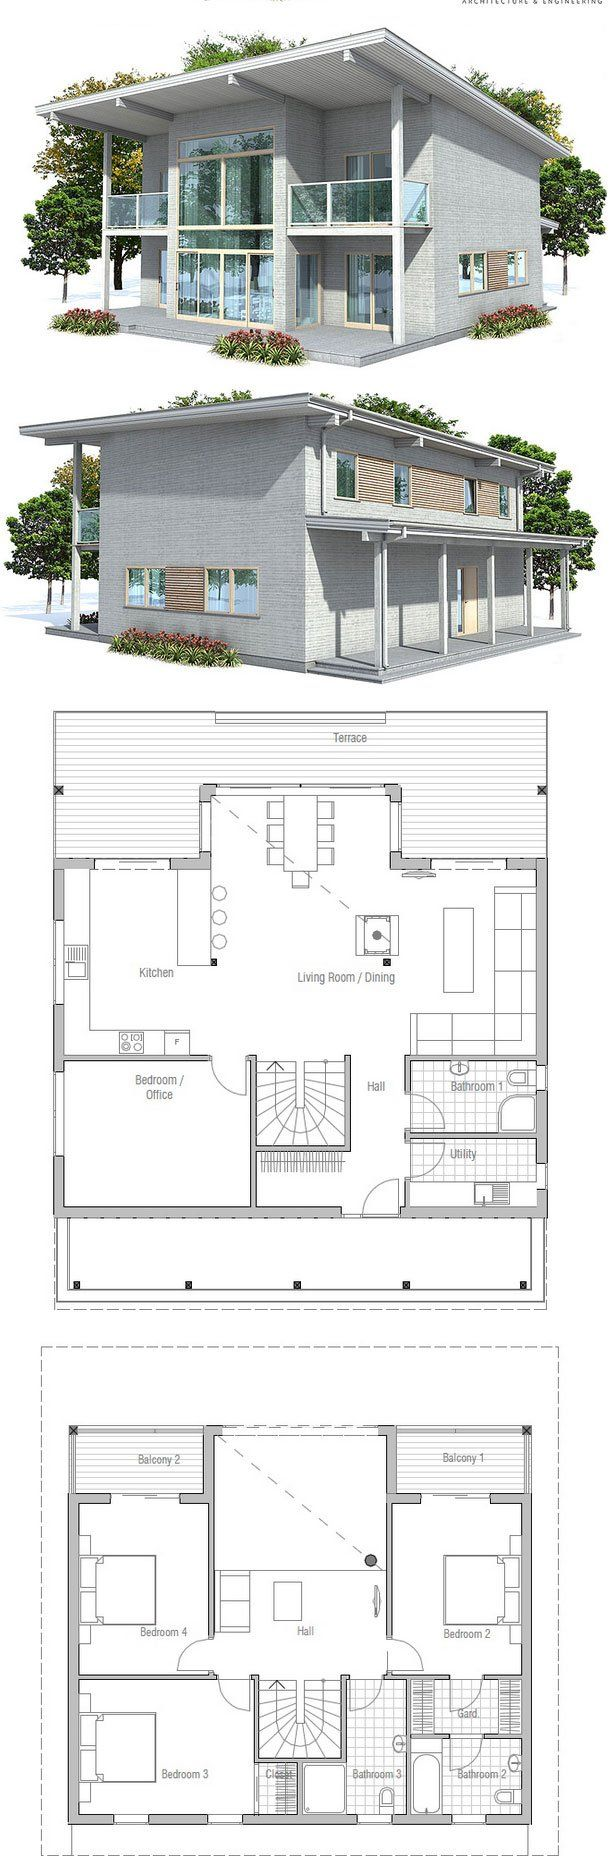 Architecture Design Of Small House top 25+ best small home design ideas on pinterest | small house